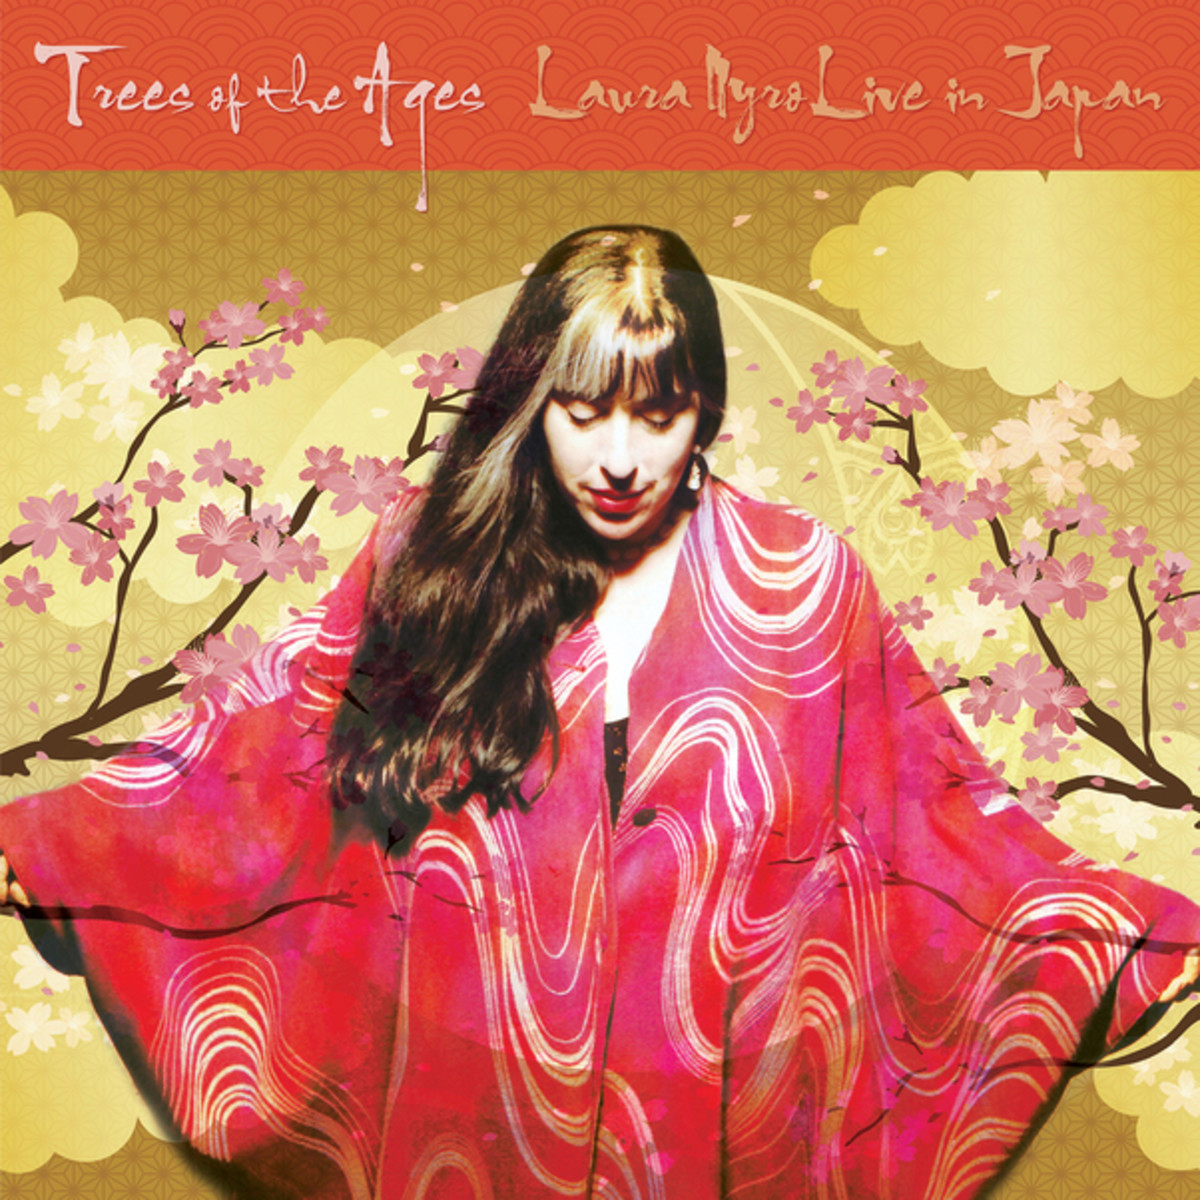 Tree of Ages: Laura Nyro Live in Japan,  previously available only in Japan, due out July 16.